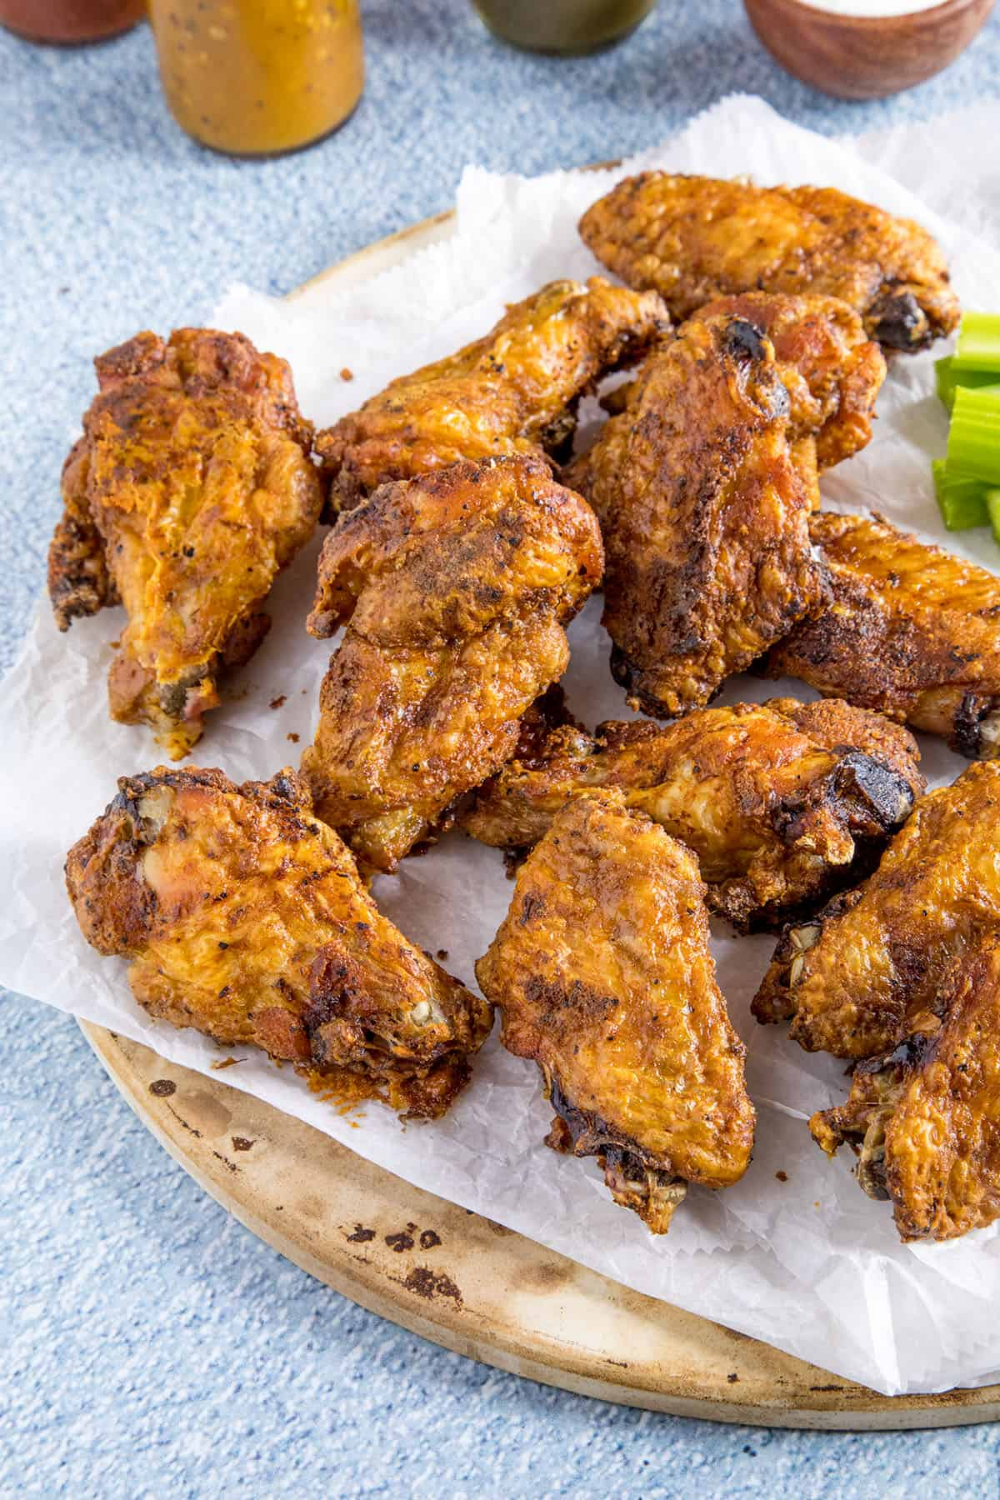 So Crispy Baked Chicken Wings Step By Step Chili Pepper Madness In 2020 Crispy Baked Chicken Baked Chicken Wings Crispy Baked Chicken Wings